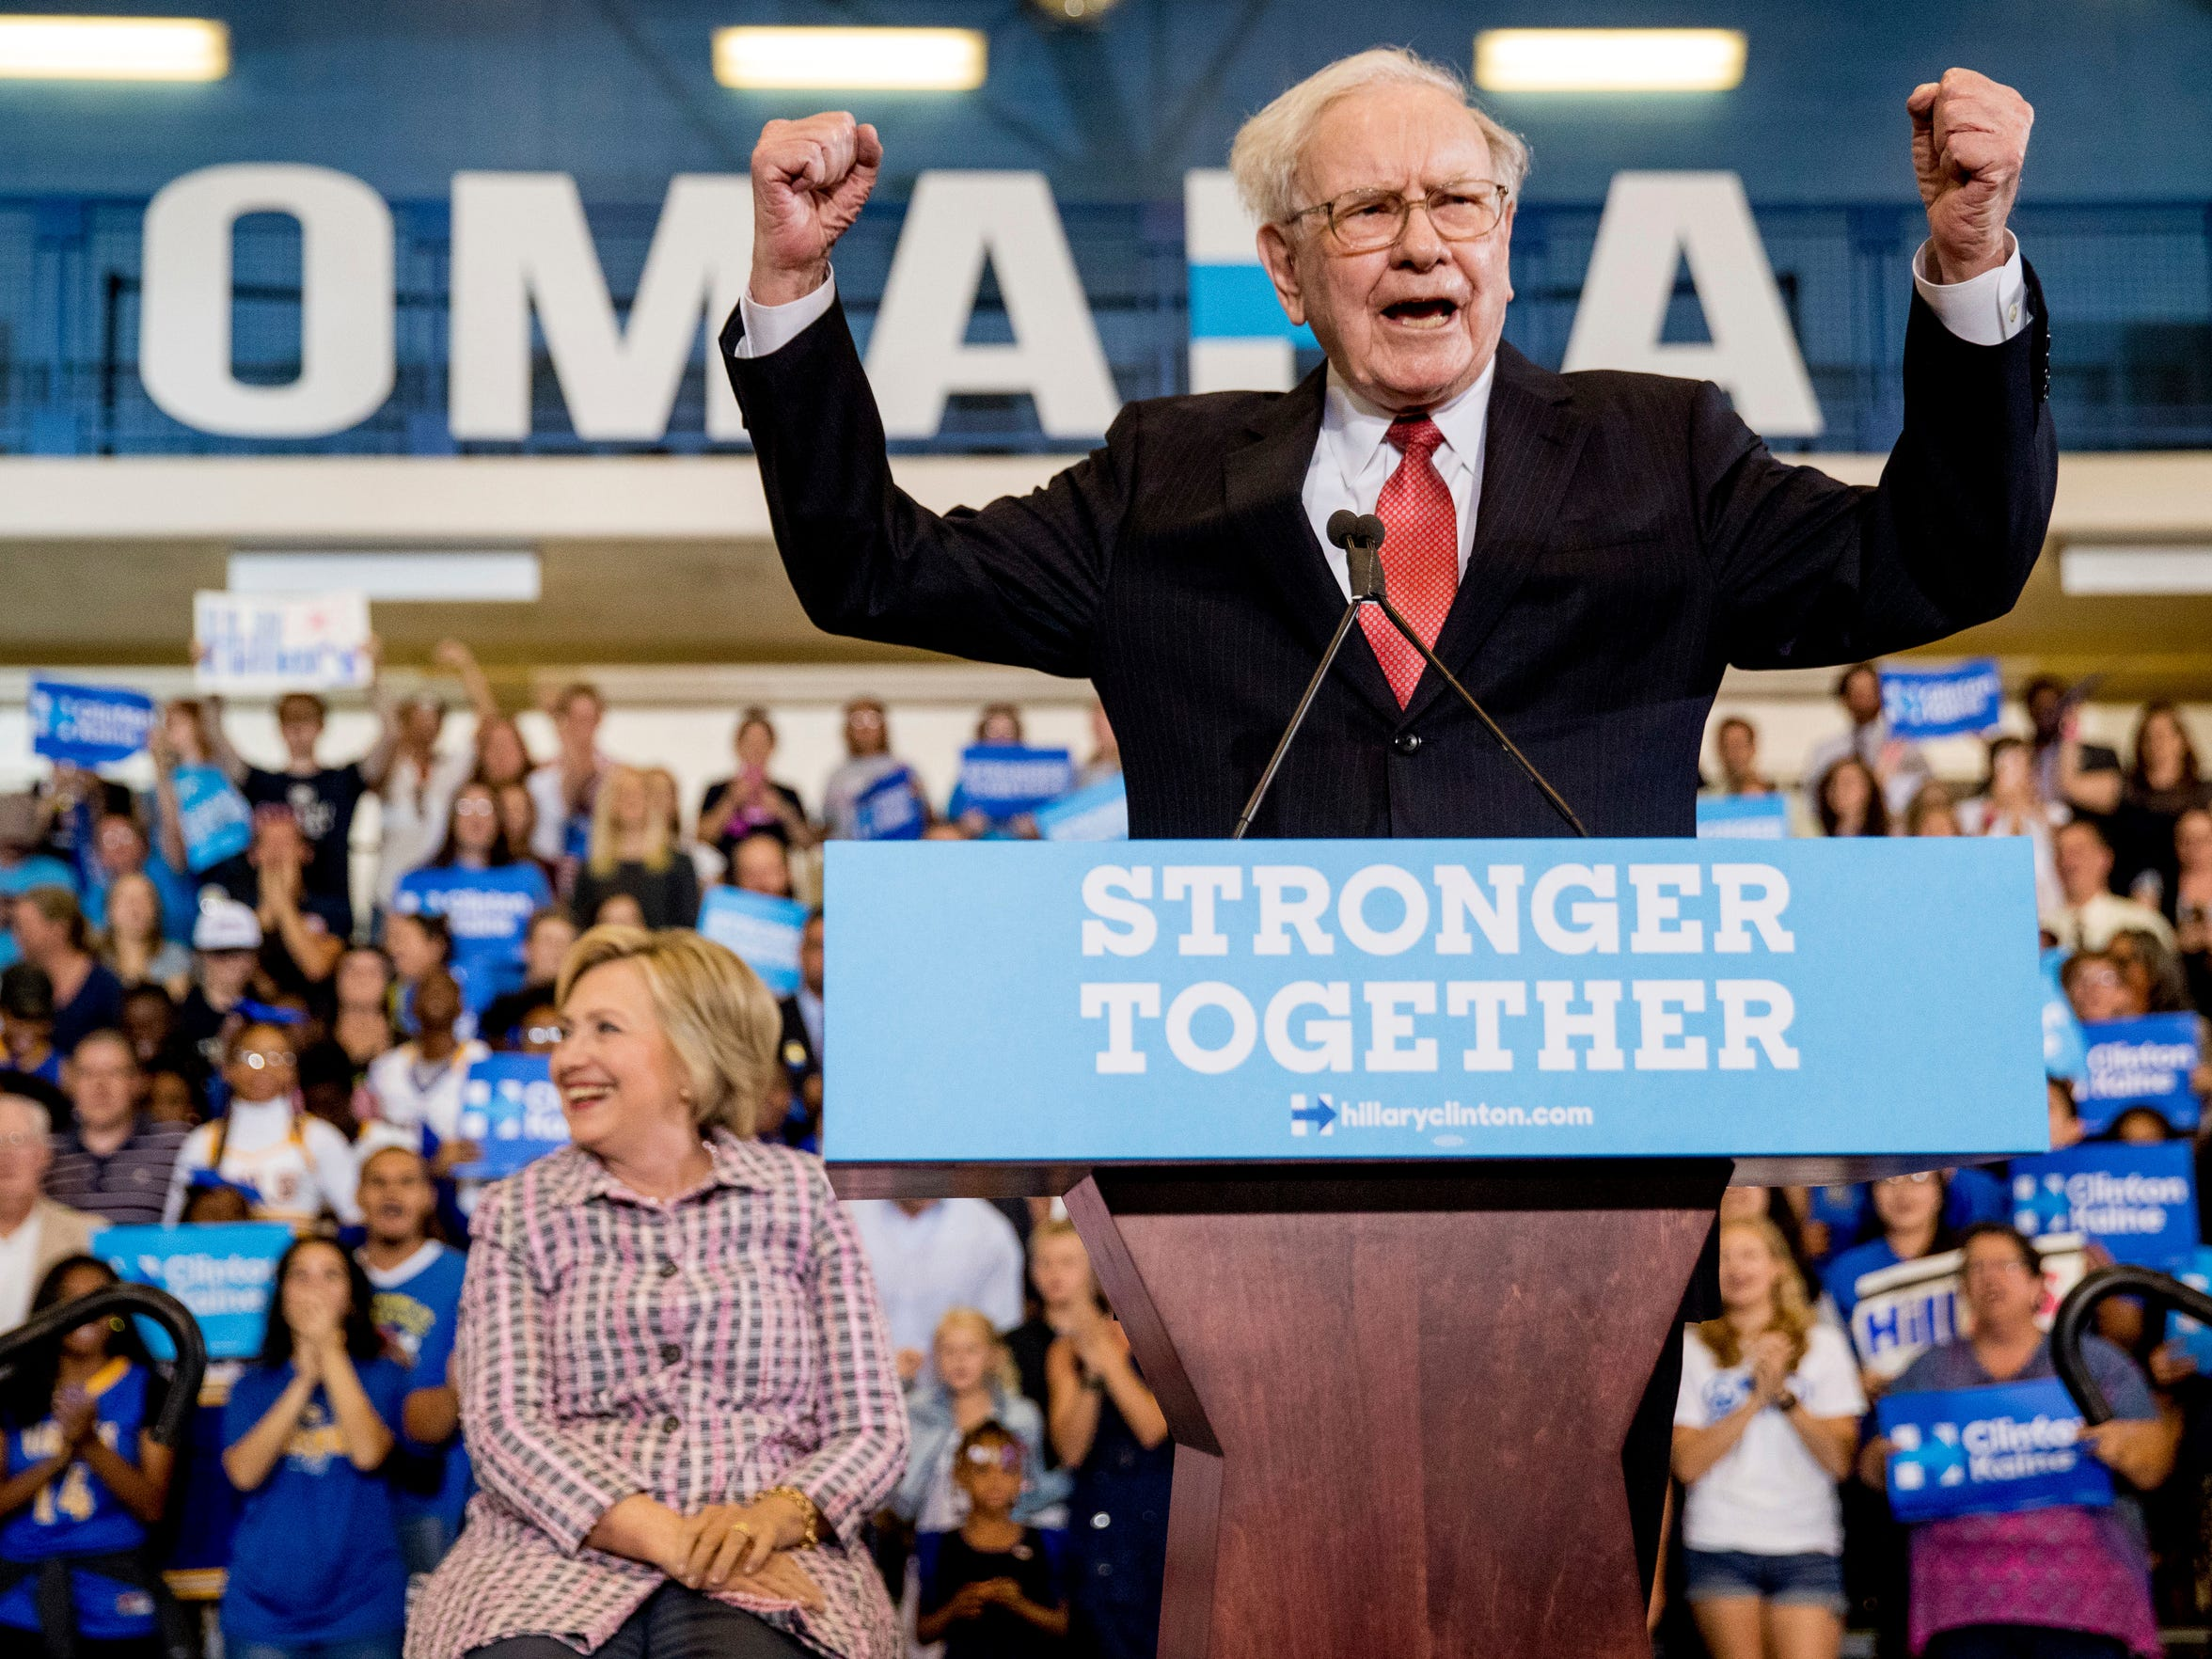 Berkshire Hathaway President and CEO Warren Buffett cheers as he and then-Democratic presidential candidate Hillary Clinton arrive at a rally at Omaha North High Magnet School in Omaha, Nebraska on Aug. 1, 2016.